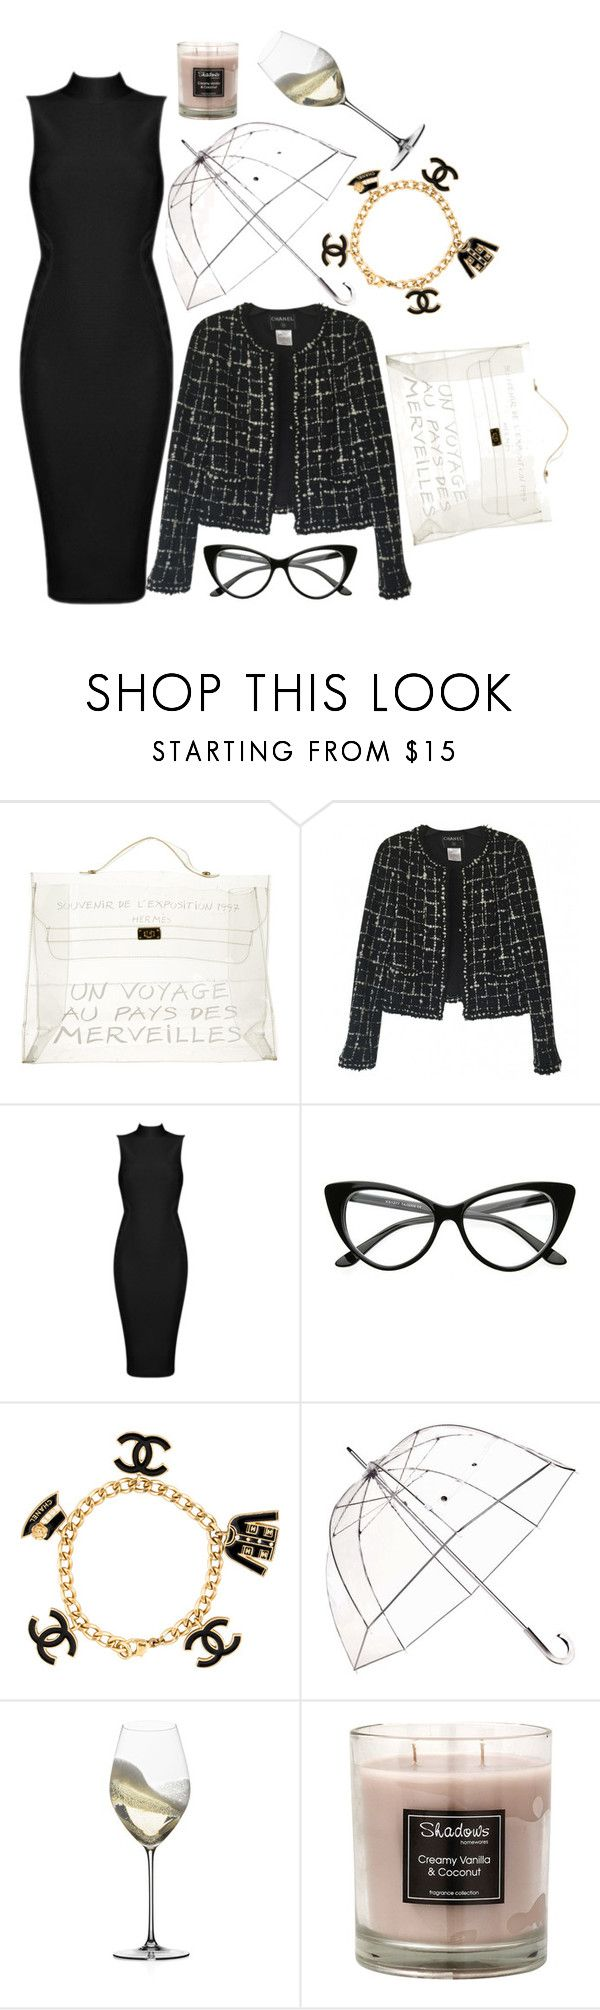 """Untitled #282"" by alratajalsayegh ❤ liked on Polyvore featuring Hermès, Chanel, Totes, Riedel, clear and Seethru"